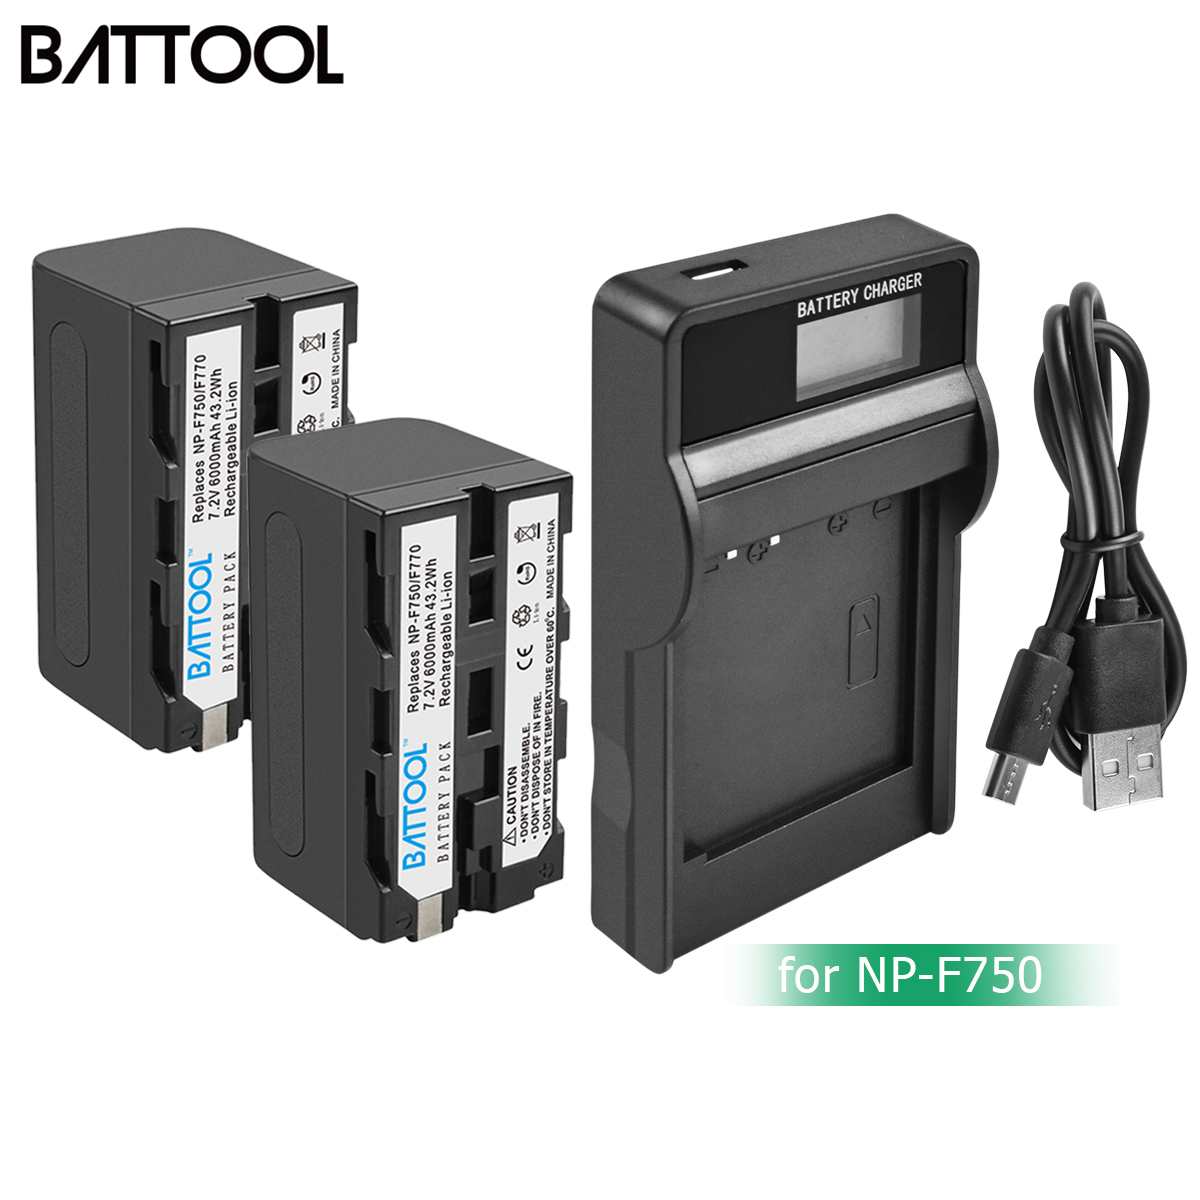 BATTOOL 6000mAh NP-F770 NP-<font><b>F750</b></font> NP F770 np <font><b>f750</b></font> NPF770 750 <font><b>Batteries</b></font>+LCD Charger For Sony NP-F550 NP-F770 NP-<font><b>F750</b></font> F960 F970 image